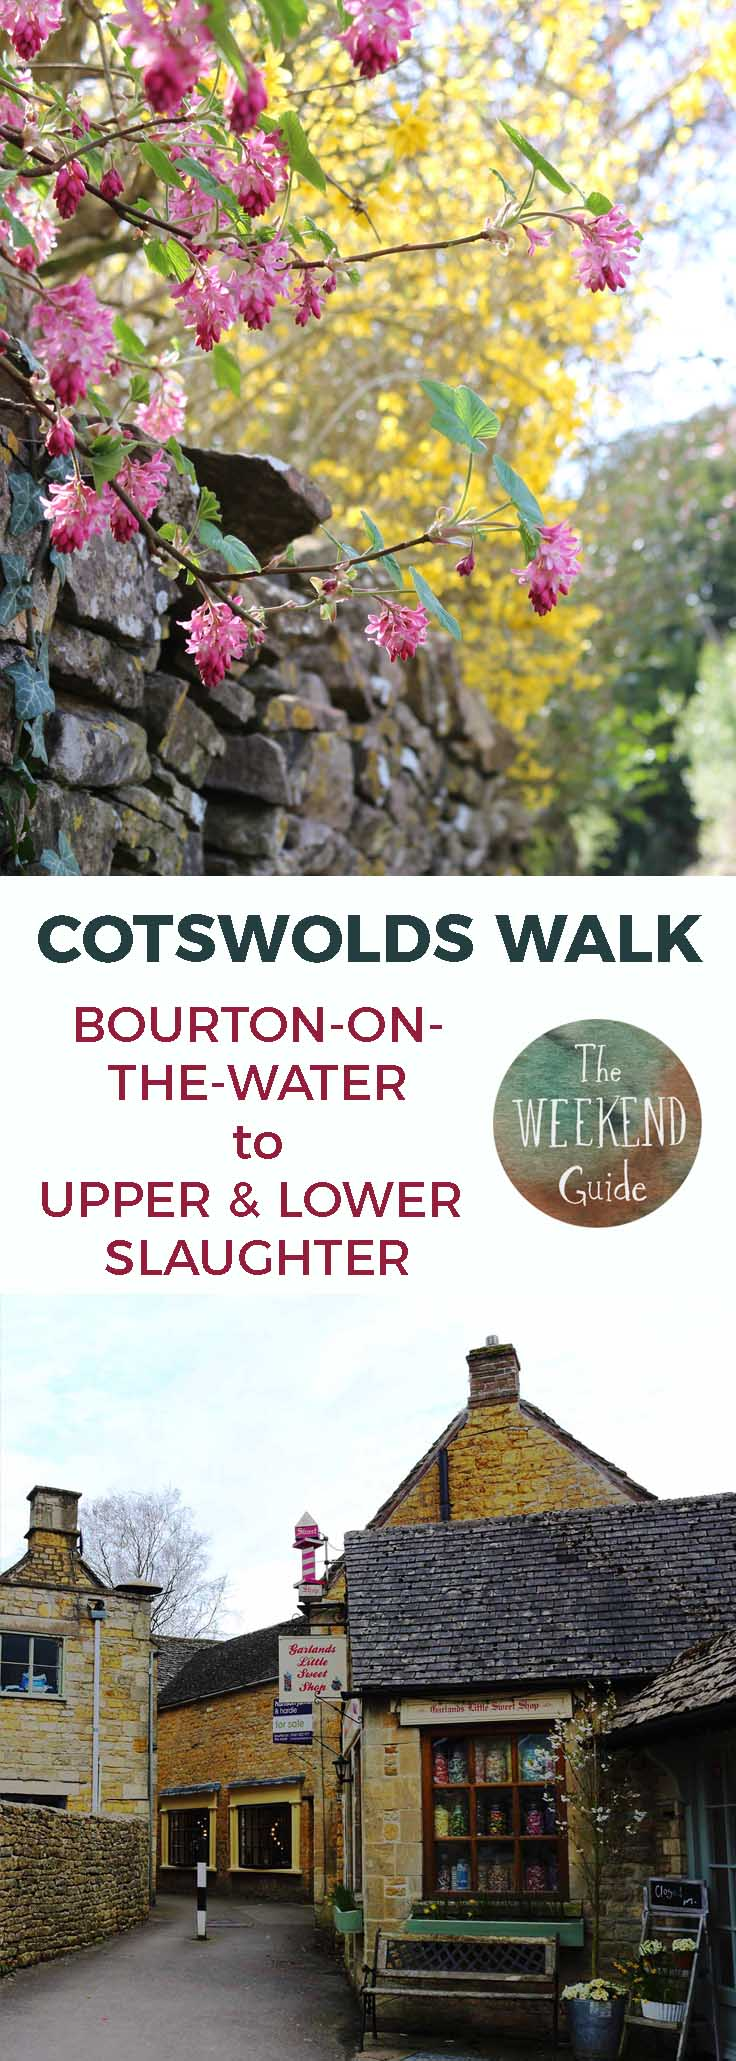 Burton-on-the-Water is a popular tourist destination and for good reason. This cute and charming little village sits on a river in the heart of the beautiful Cotswolds. Start in Bourton for some lovely walks in the area!- theweekendguide.com